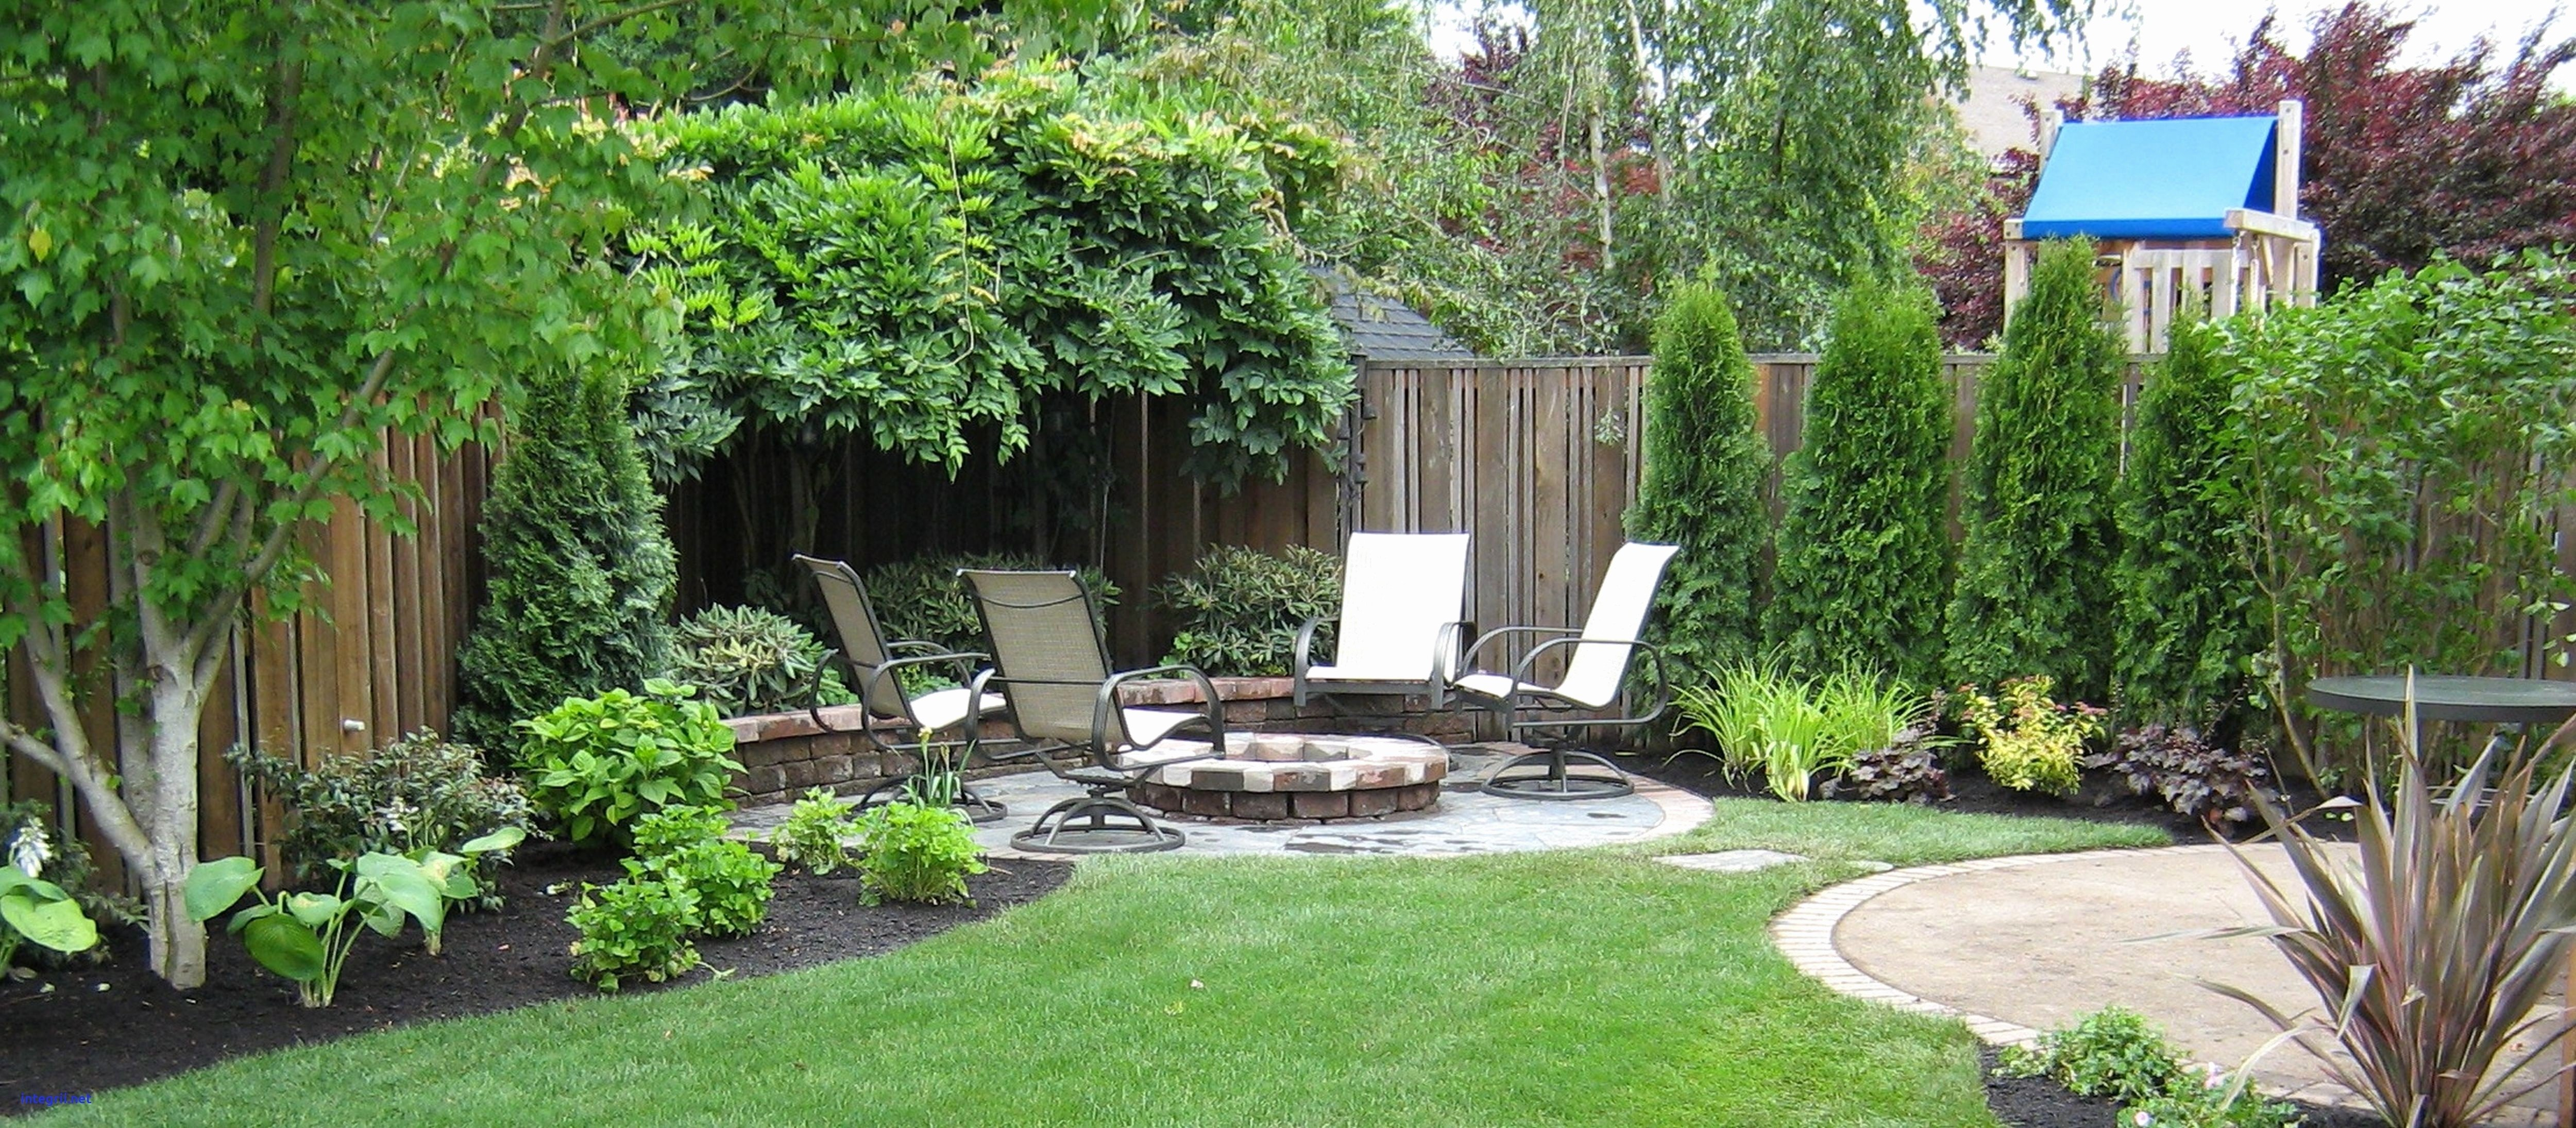 10 Stylish Landscape Ideas For Small Yards landscaping for small backyards luxury small yard landscaping ideas